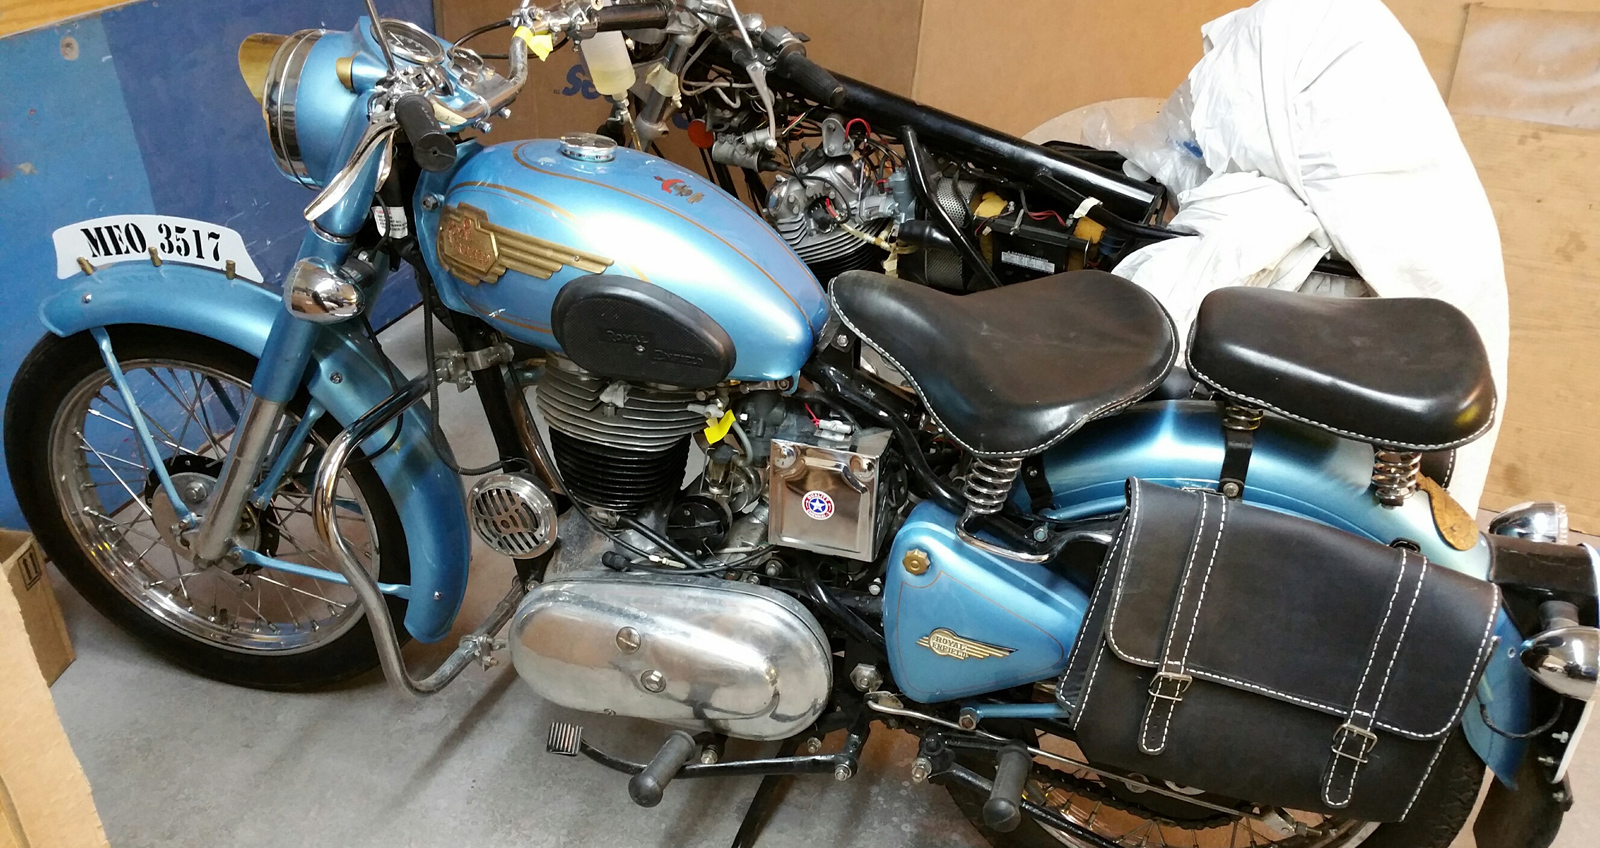 Vintage motorcycle engine & transmission rebuilds, MA, RI, CT, NH, VT, ME, NY